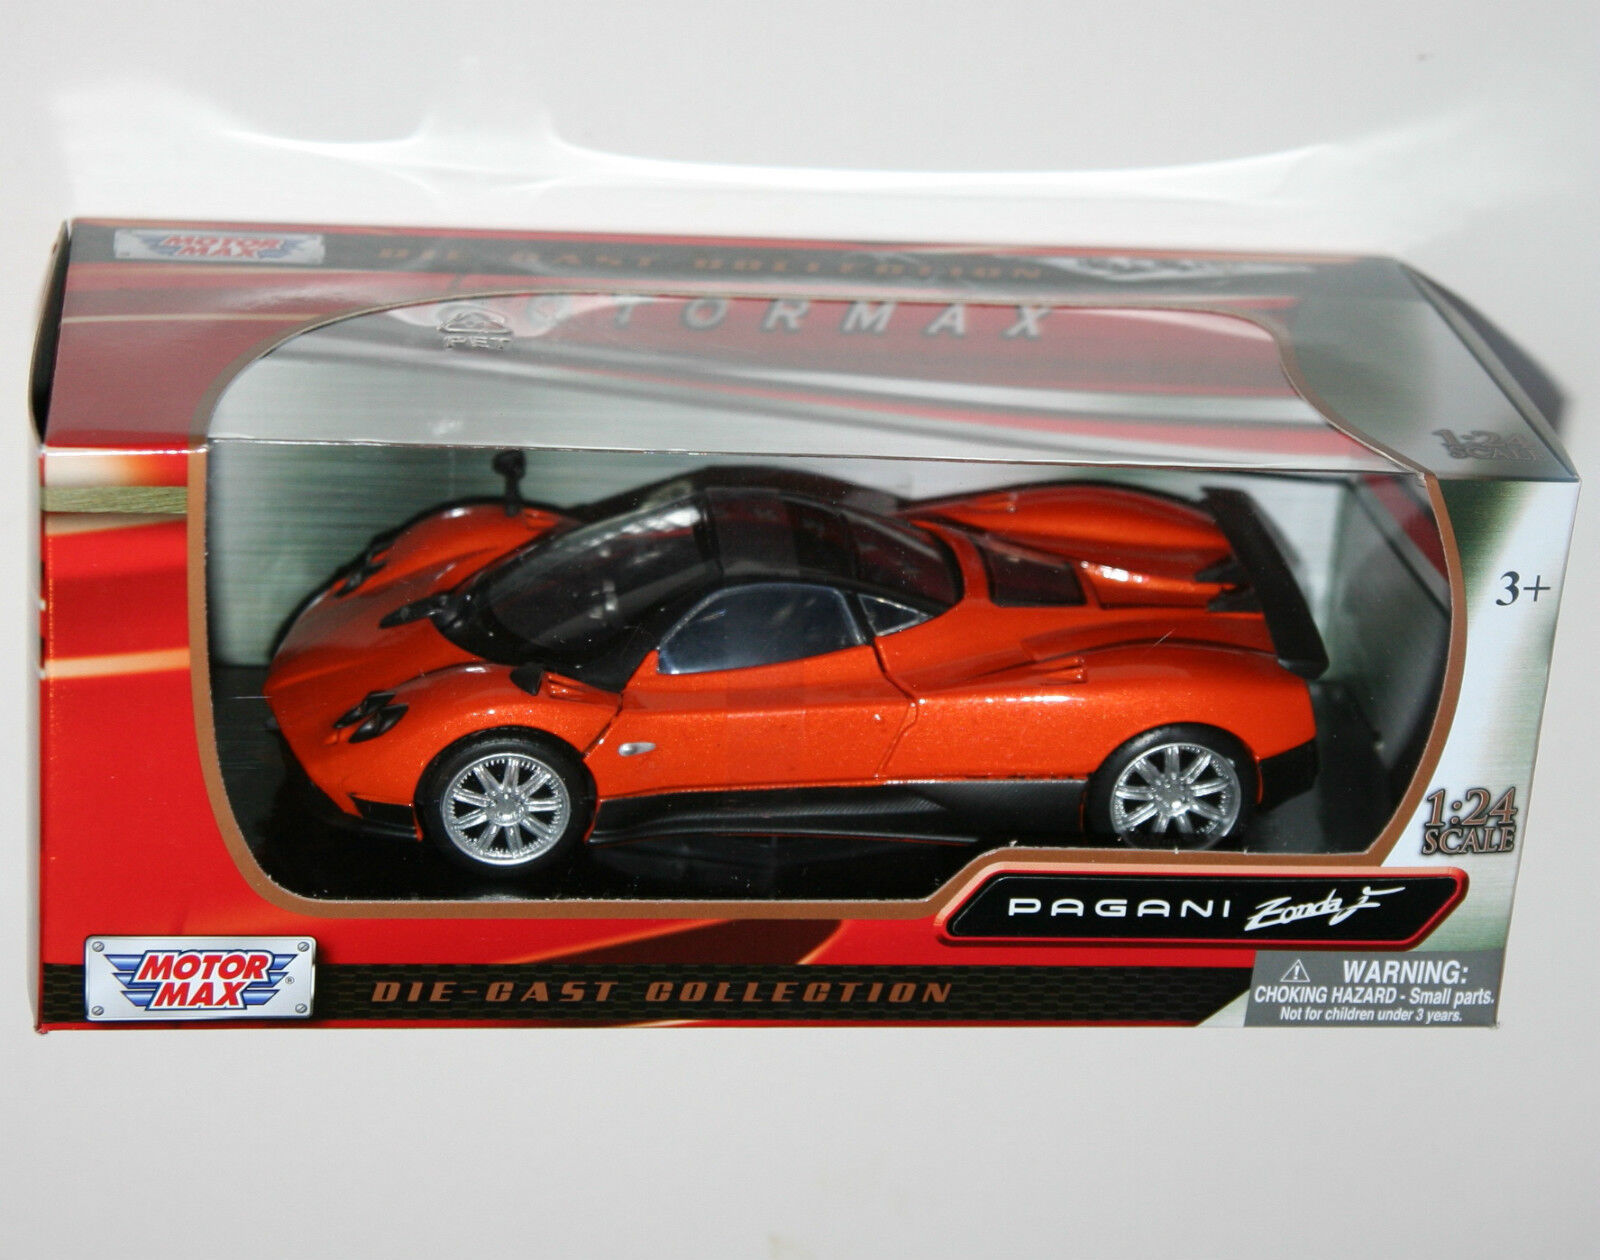 Motor Max - PAGANI ZONDA F (orange) - Model Scale 1 24